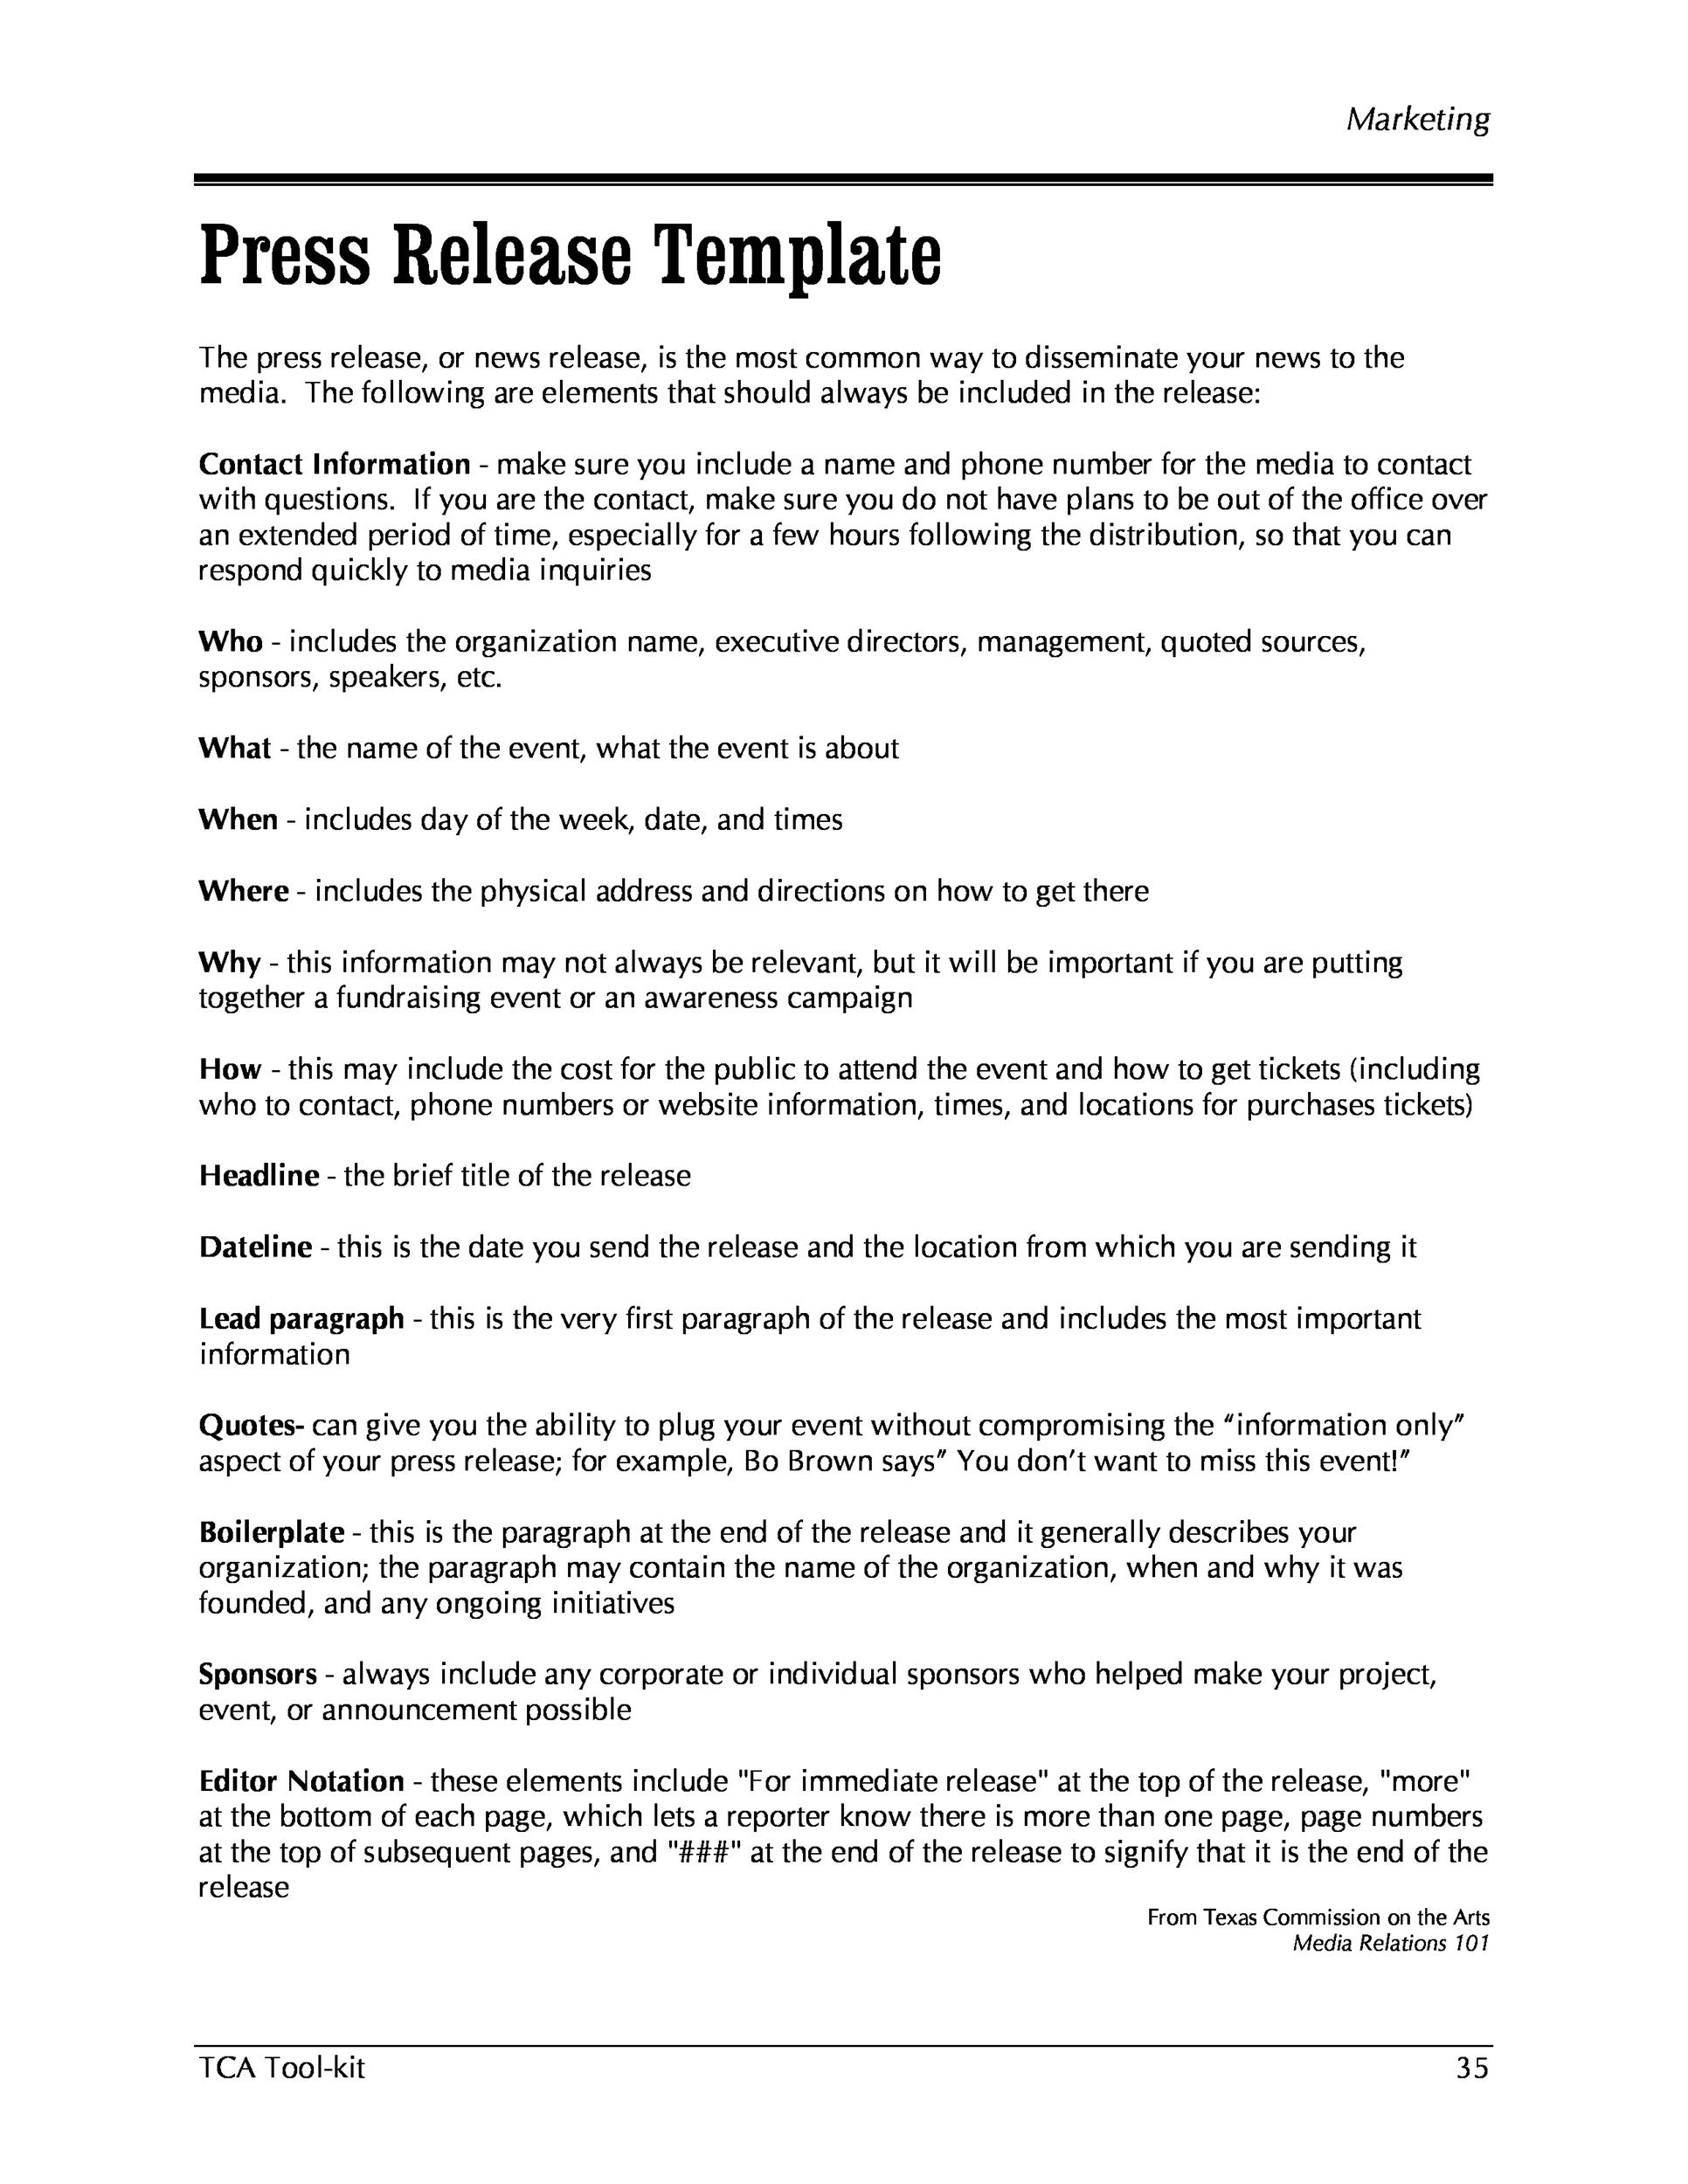 How to write a good press release headline guidelines